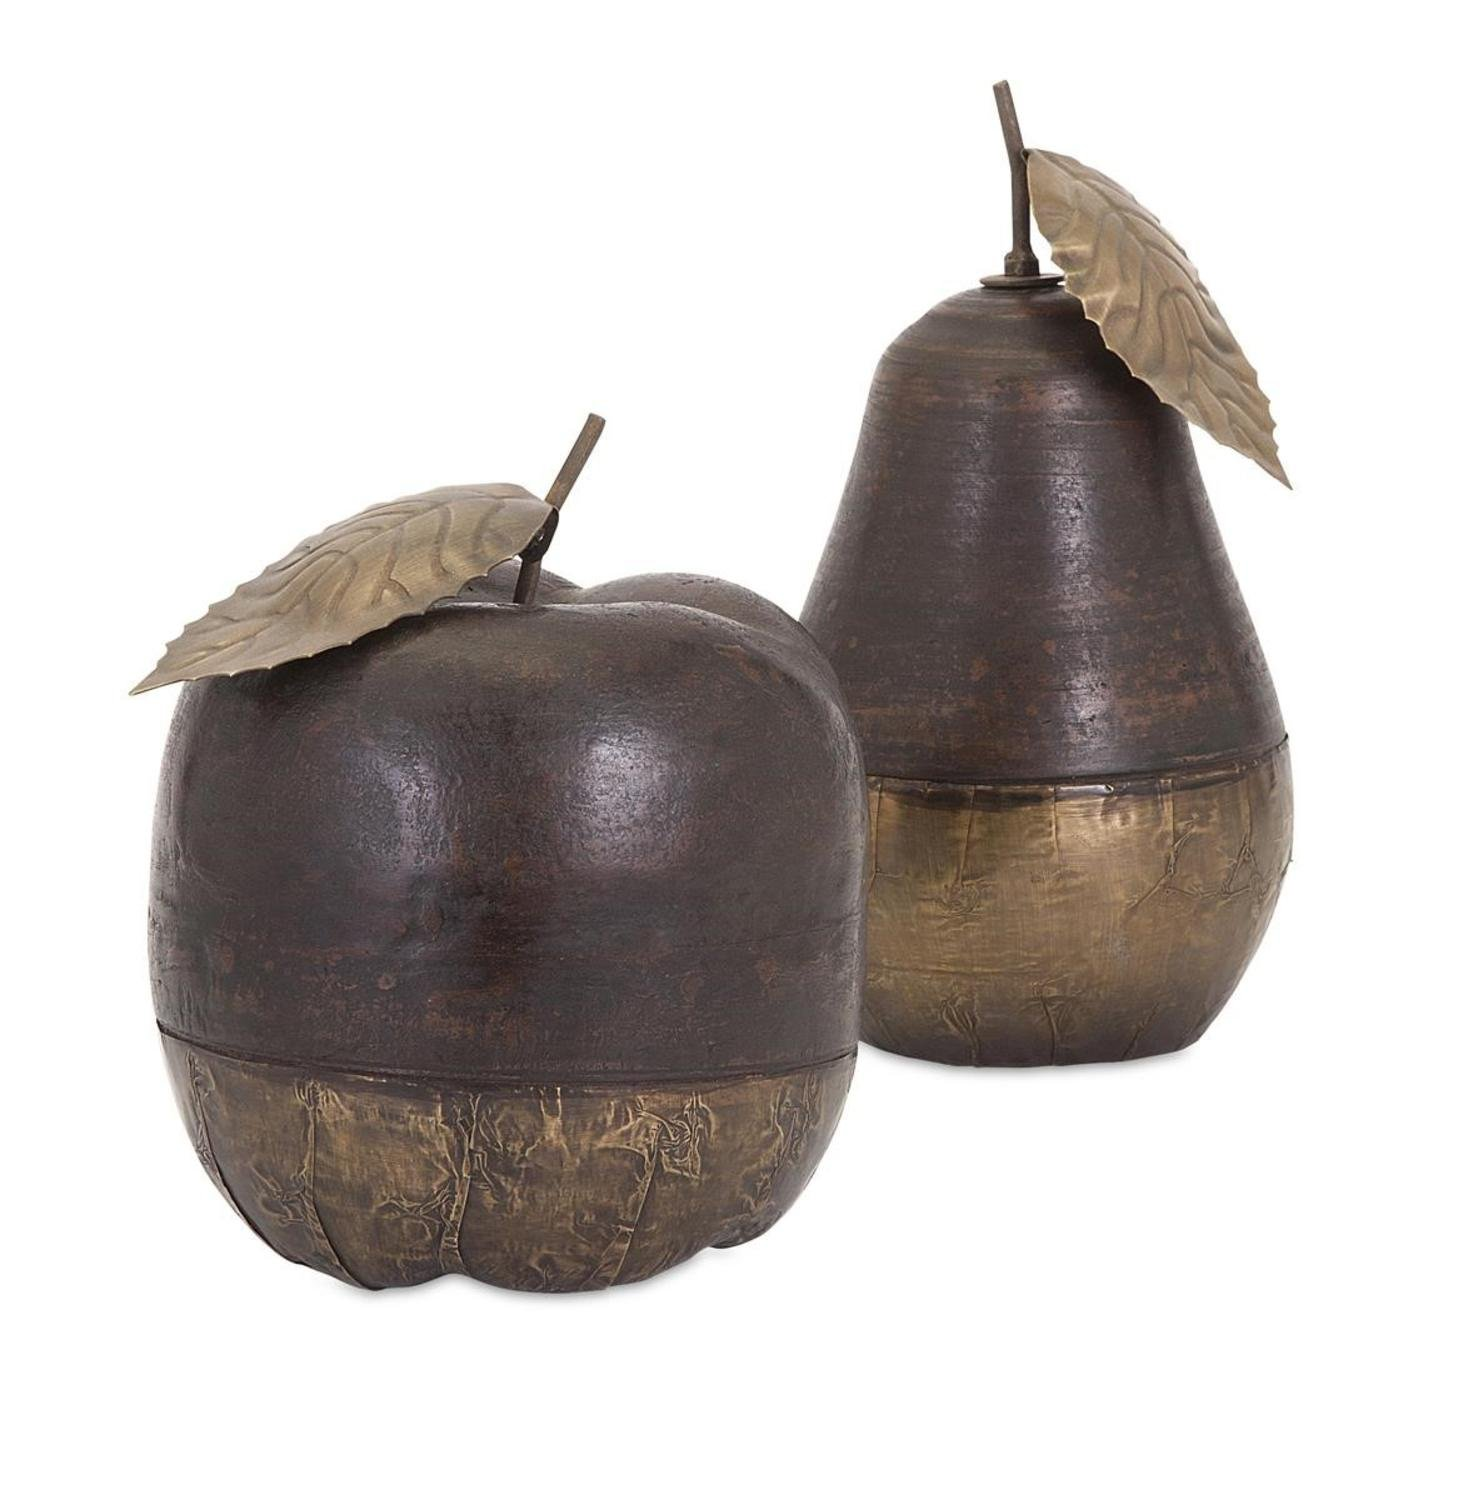 CC Home Furnishings Set of 2 Fructus Wood and Terracotta Brass Decorative Apple and Pear